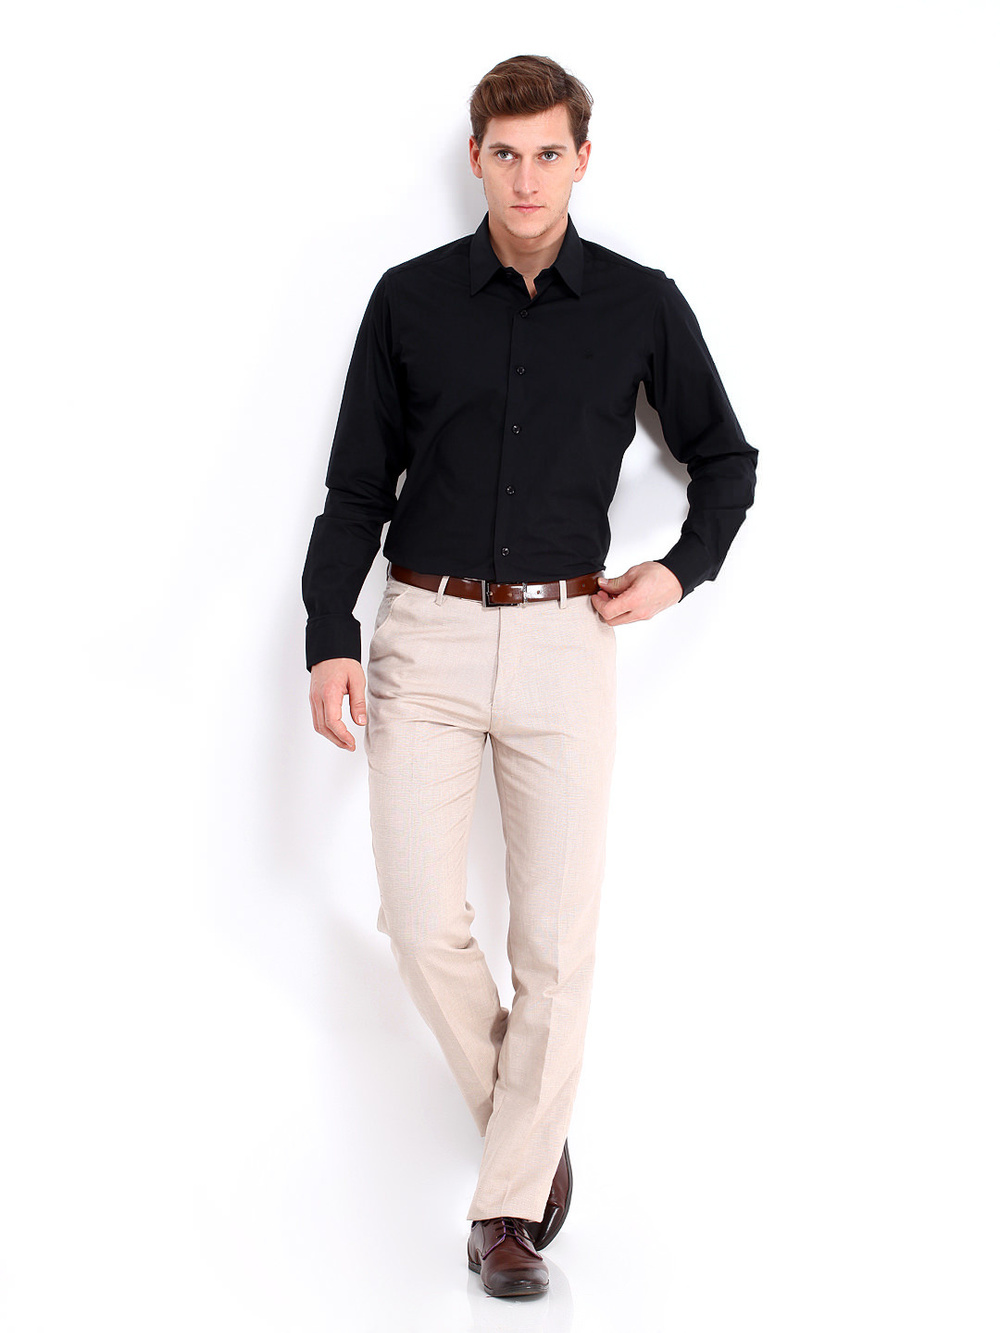 men black smartcasual shirt designer men shirts  buy